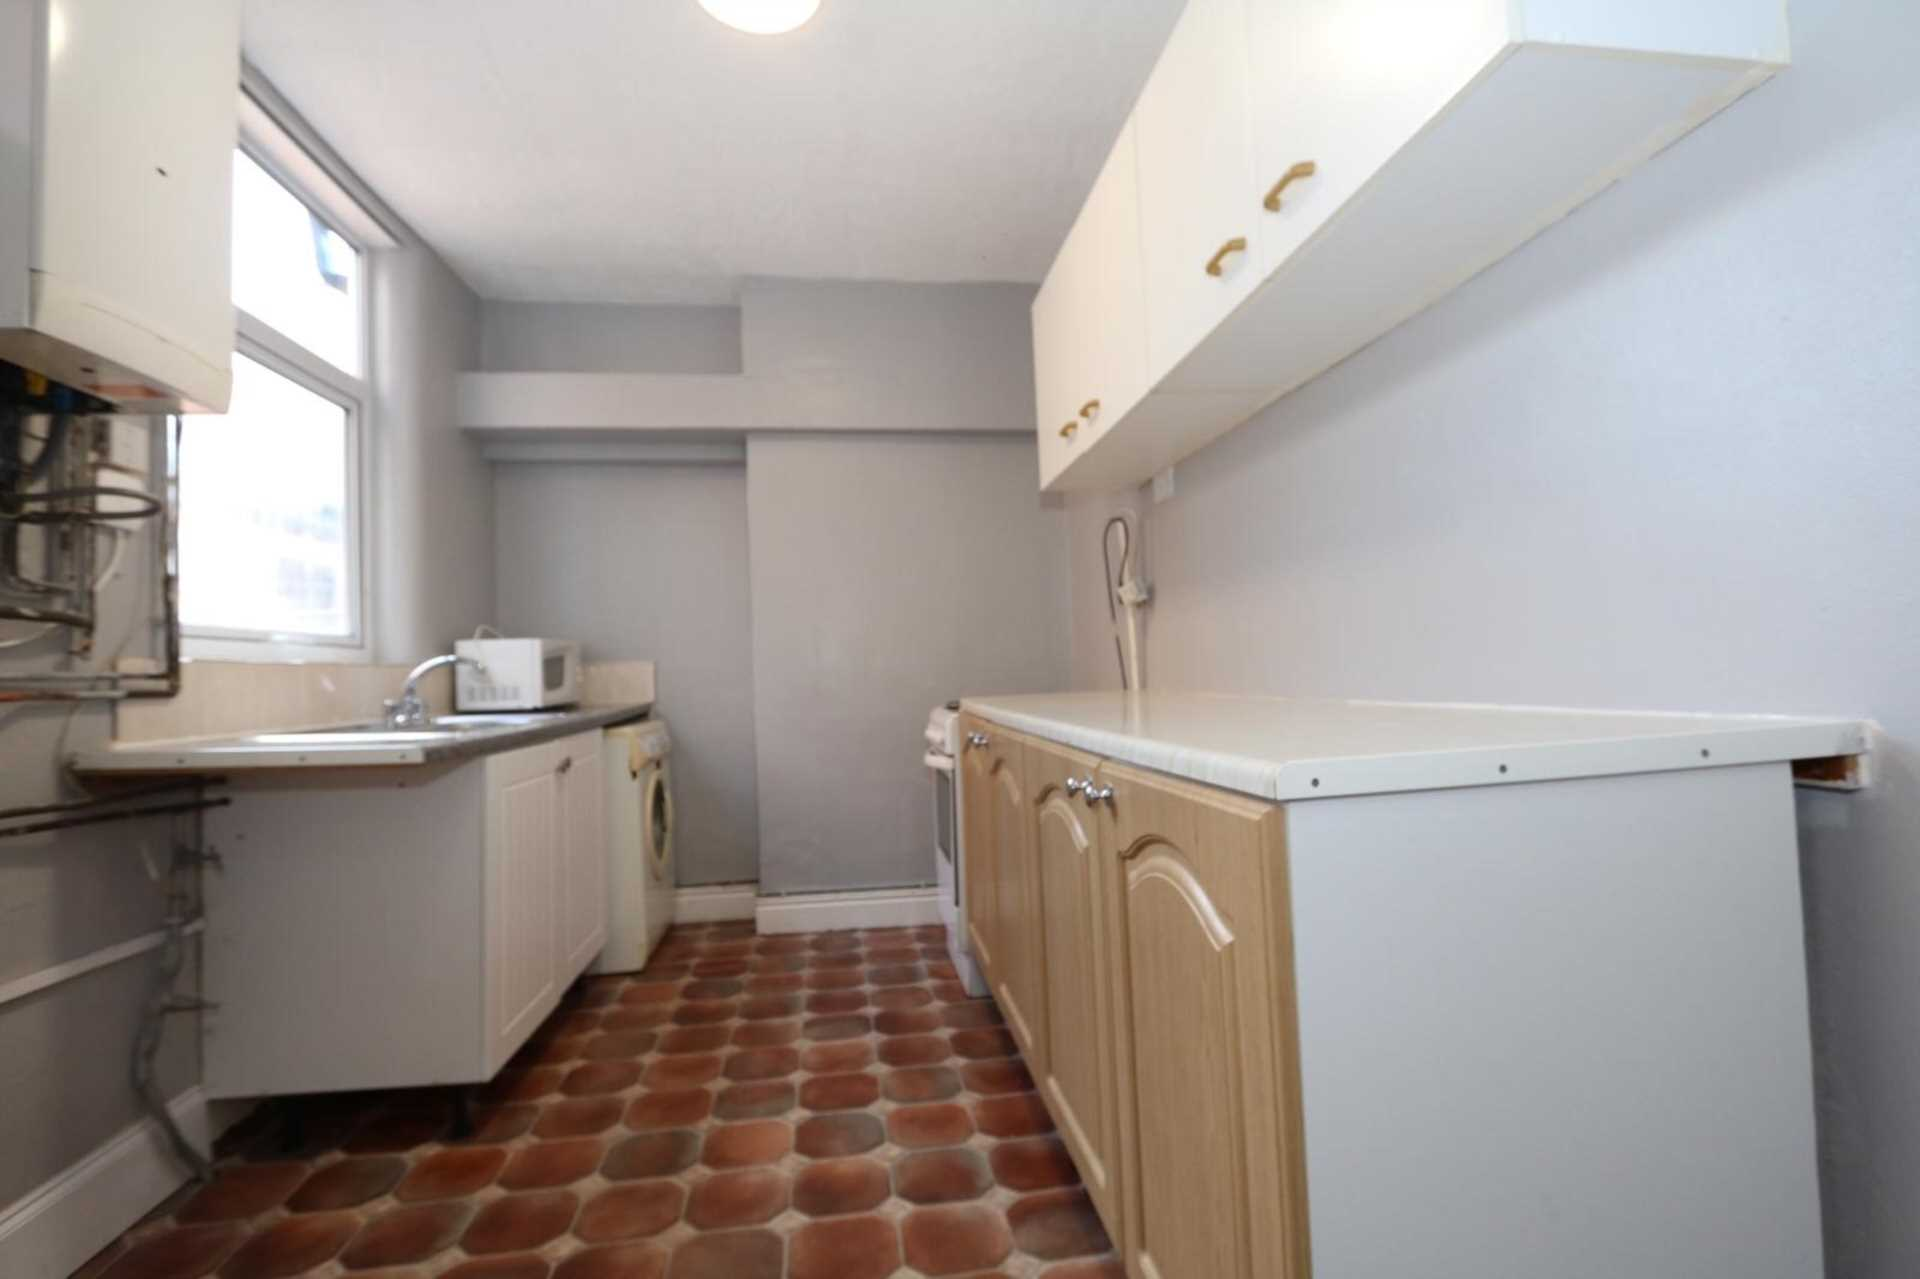 Gaul Street - 3 bedroom student home fully furnished, WIFI & bills included - NO FEES, Image 6